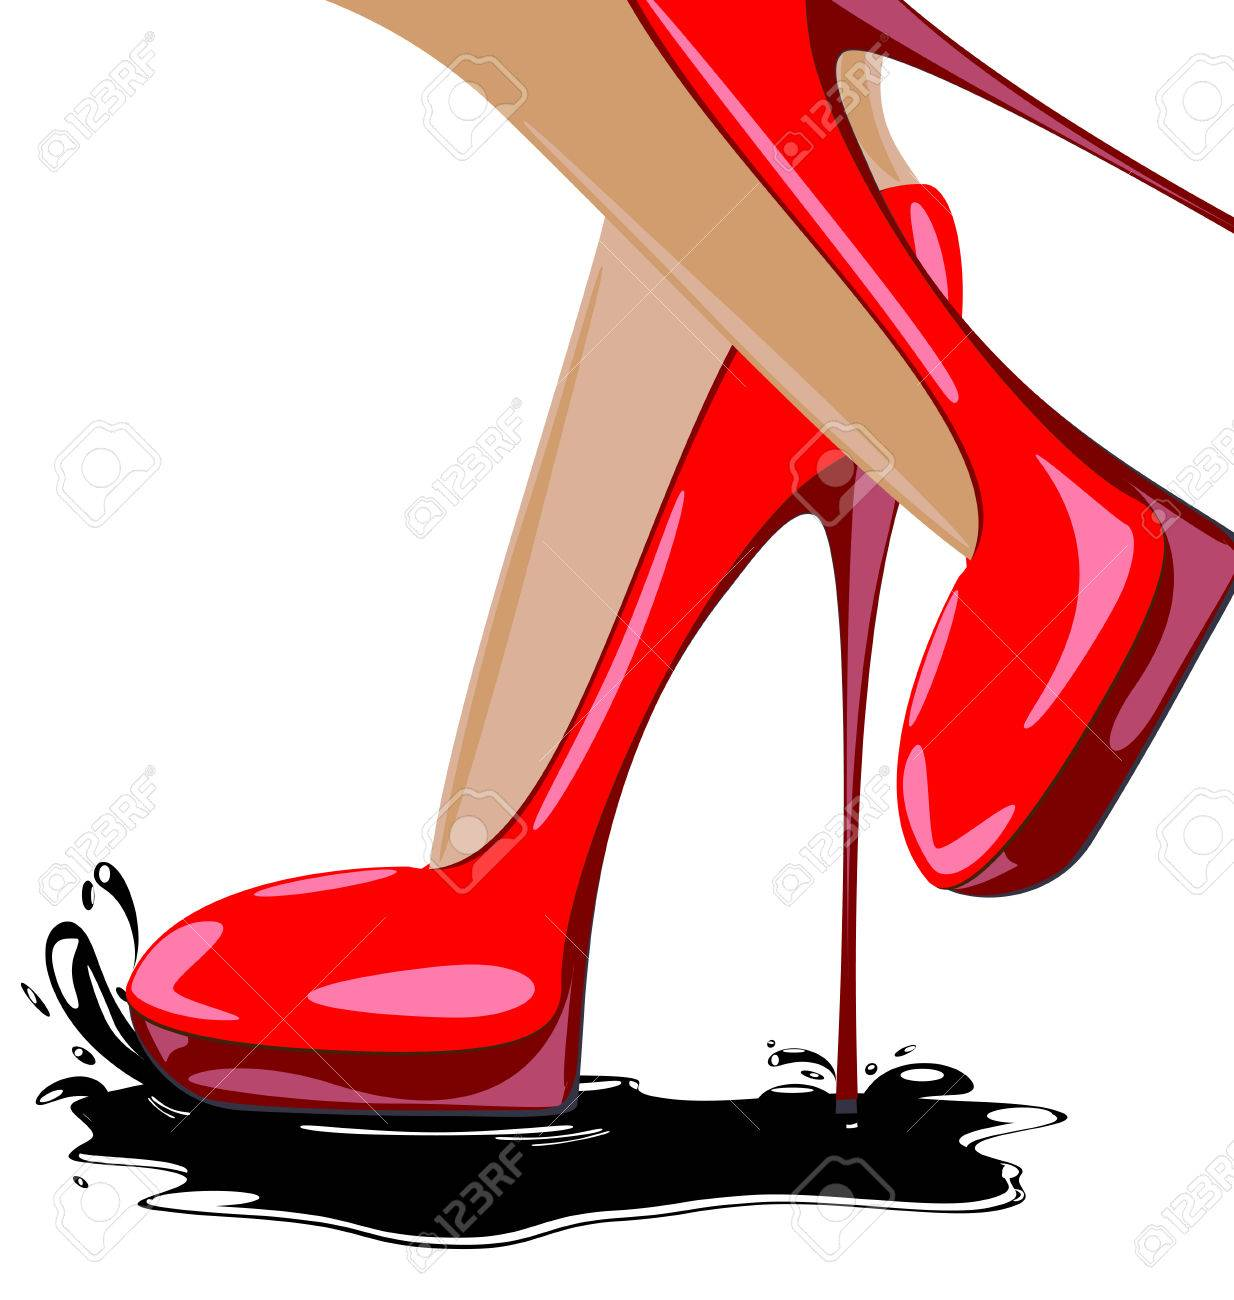 1234x1300 13,923 Red Shoes Stock Vector Illustration And Royalty Free Red